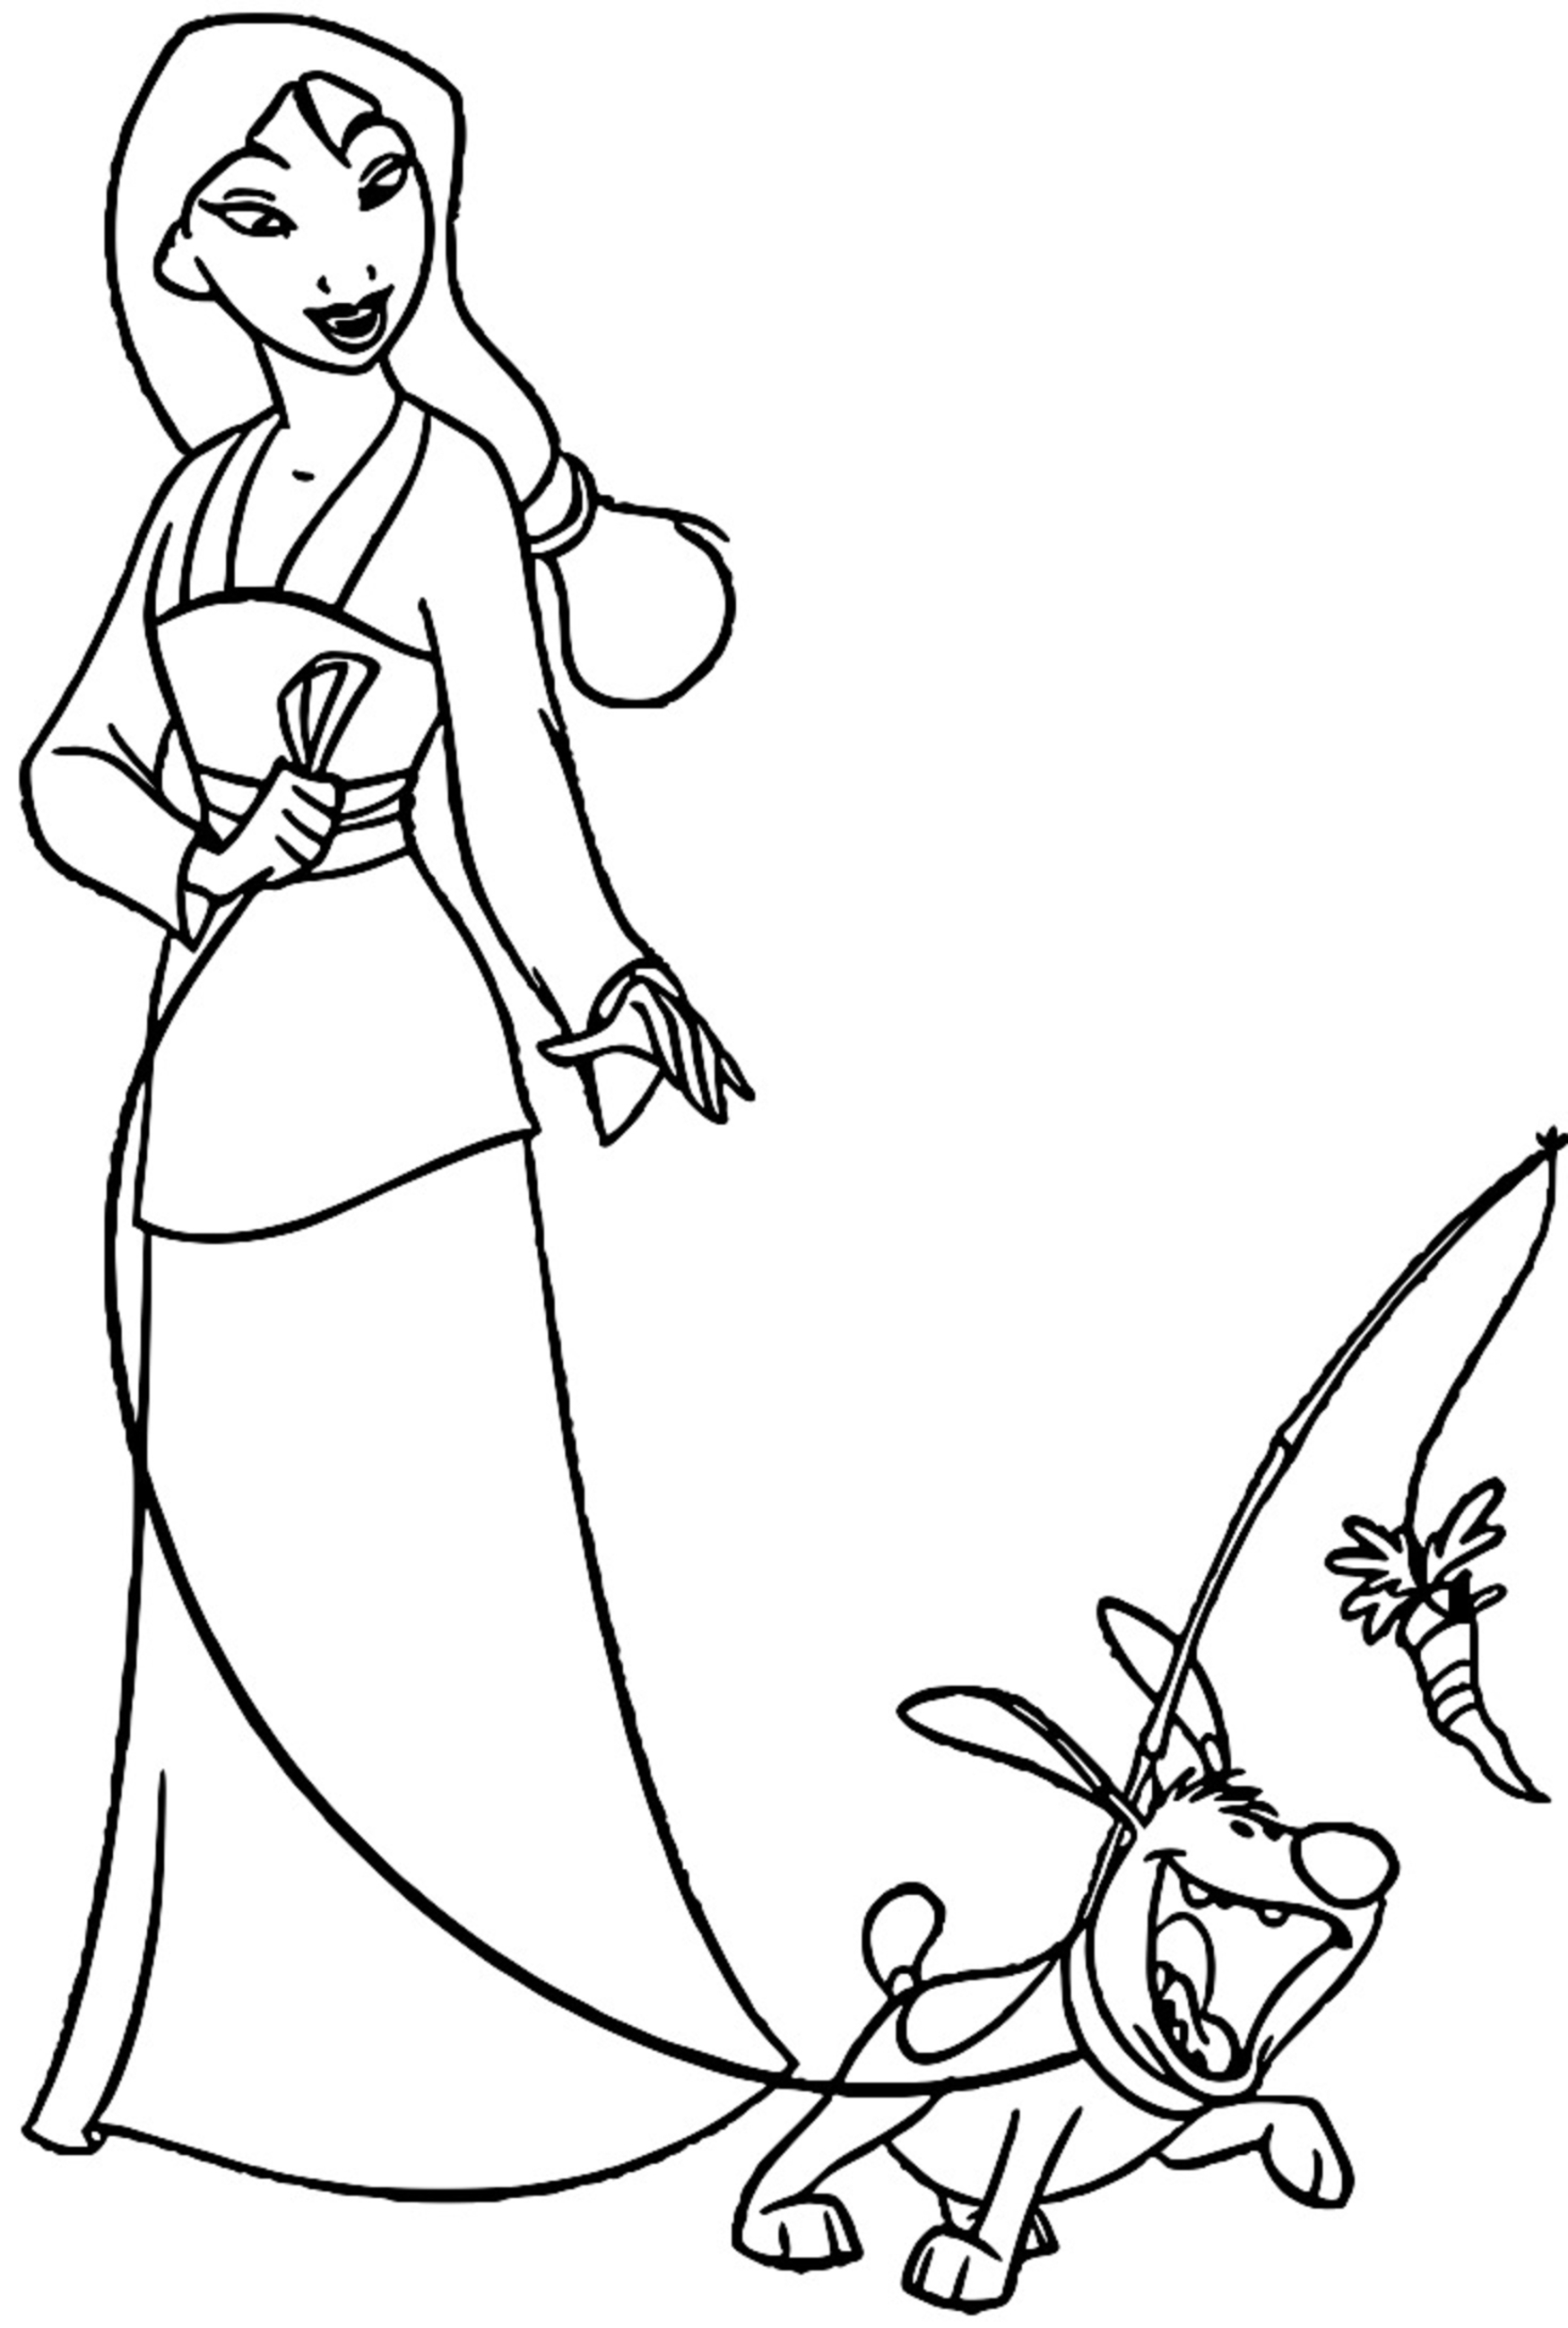 Mulan Khan Little Brother Coloring Page 27